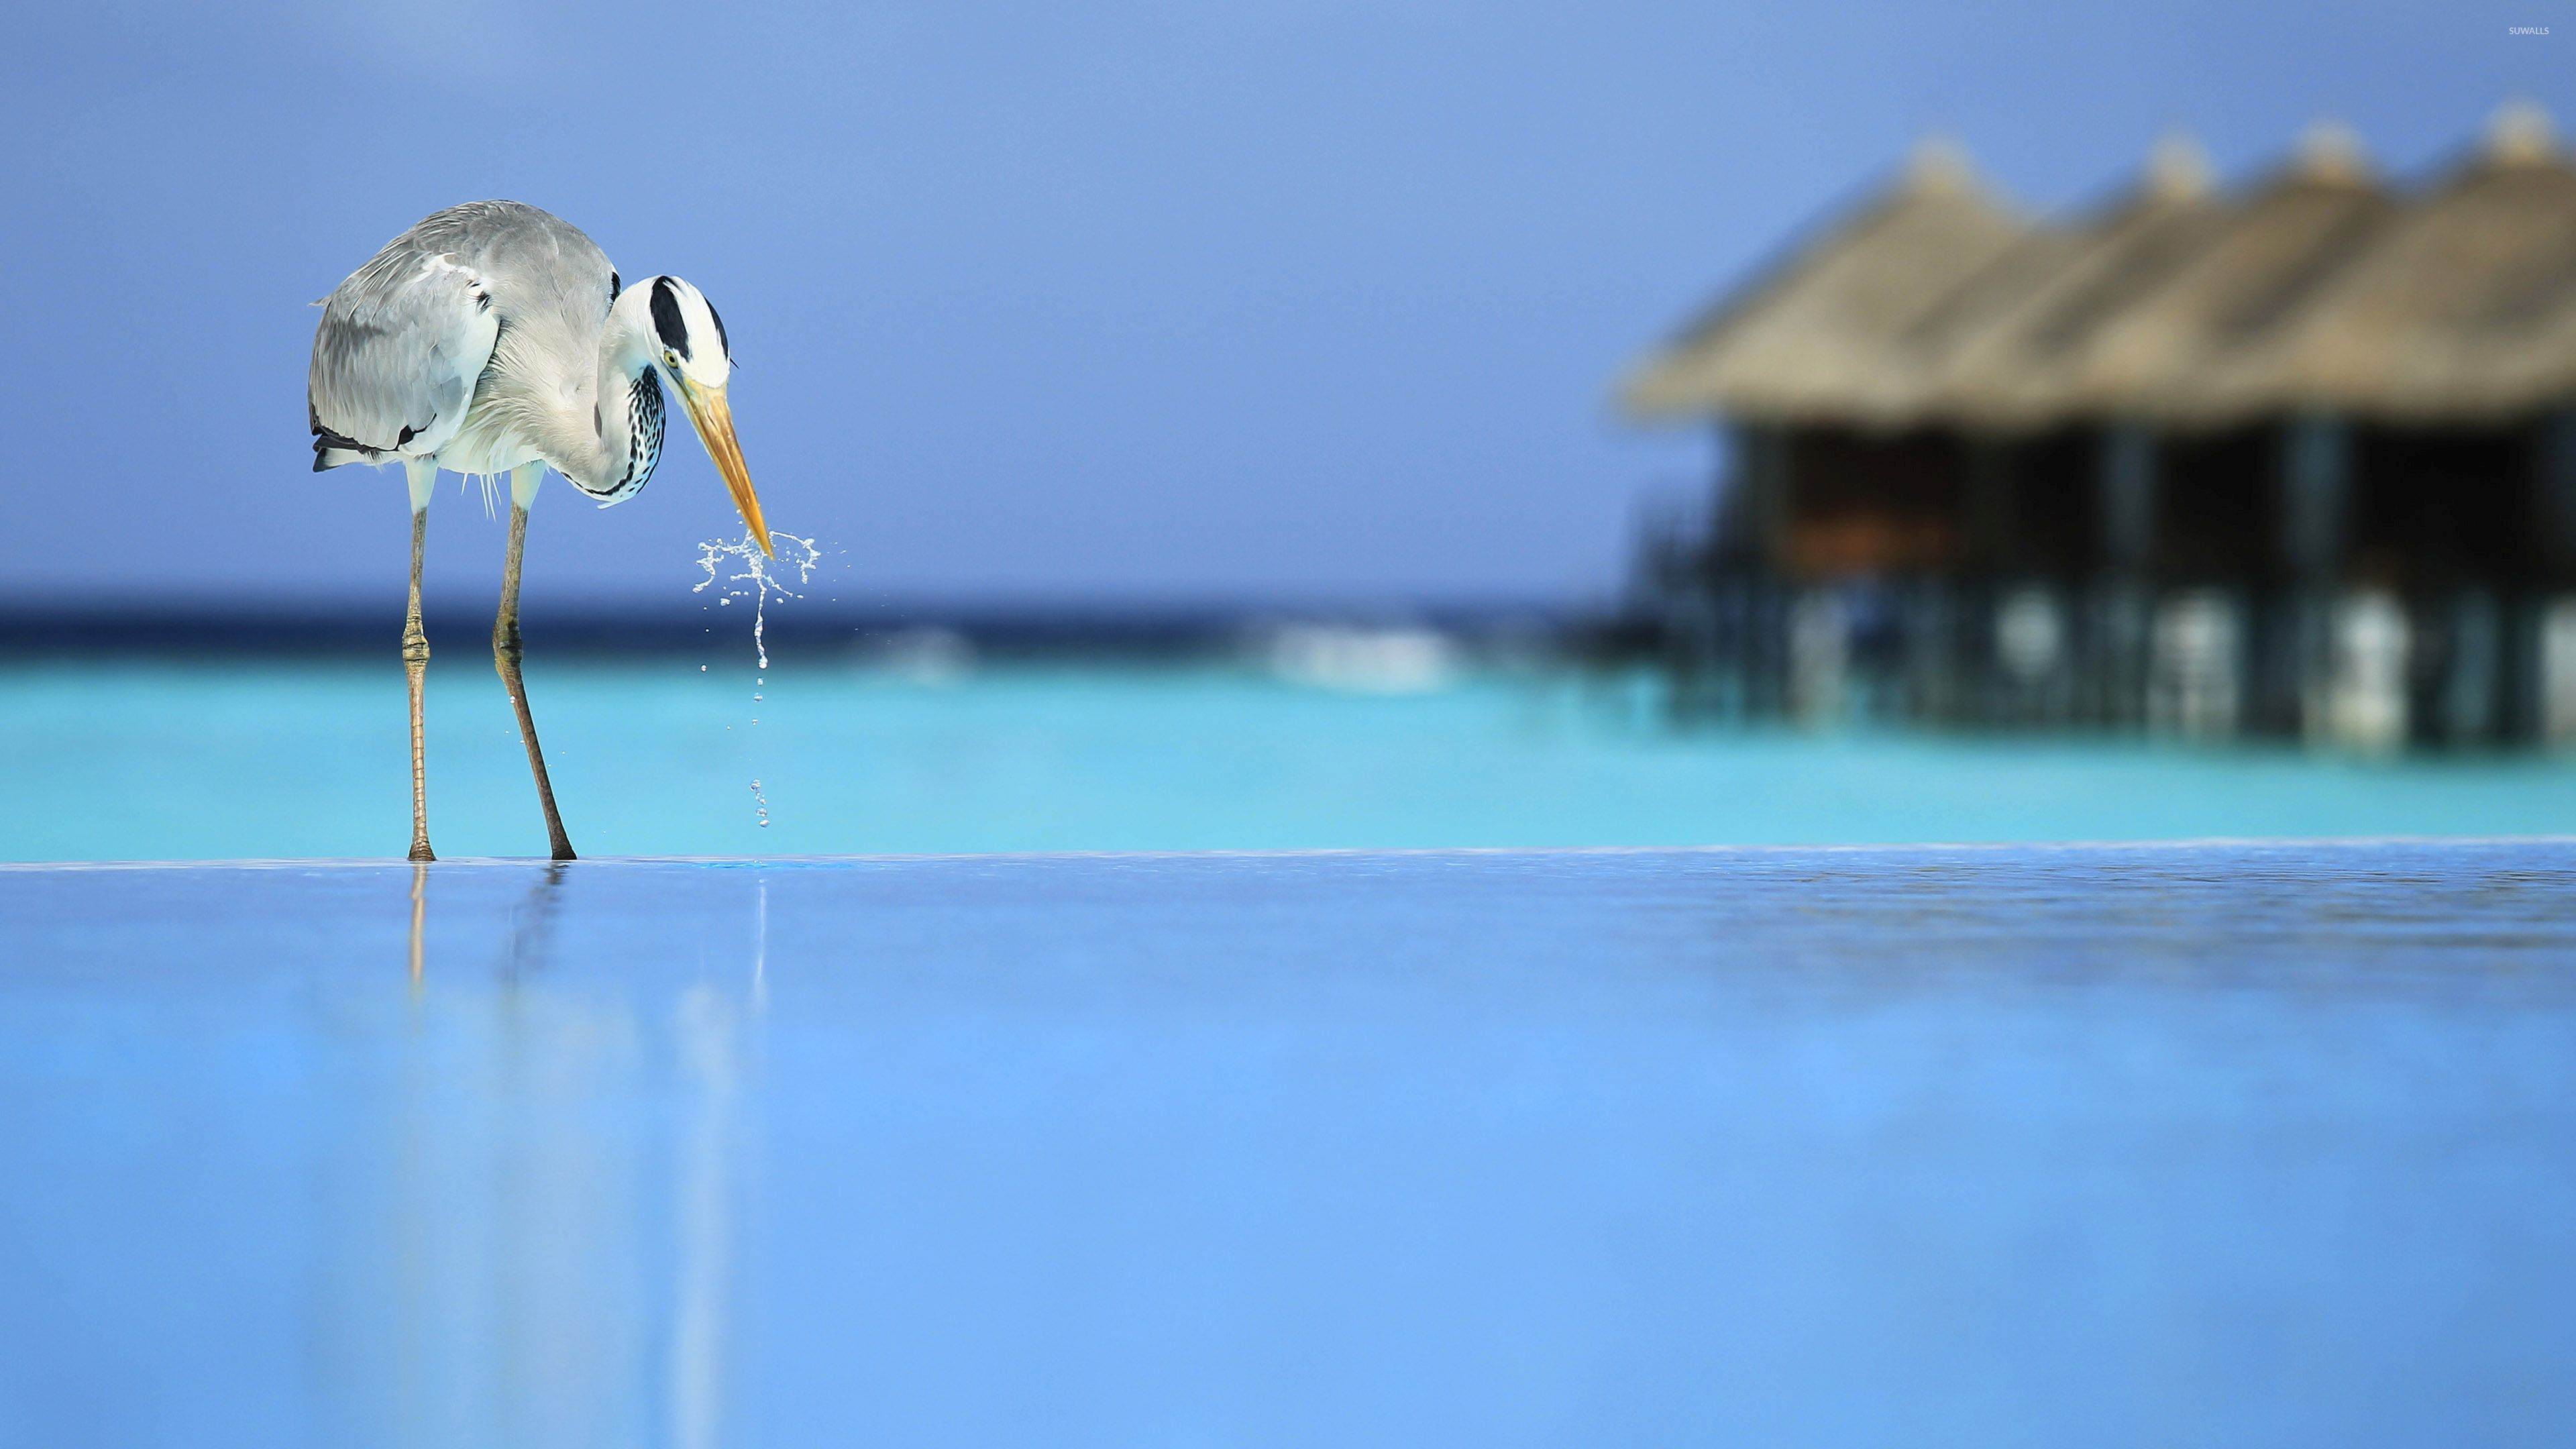 Bird drinking water from the pool wallpaper Animal wallpapers